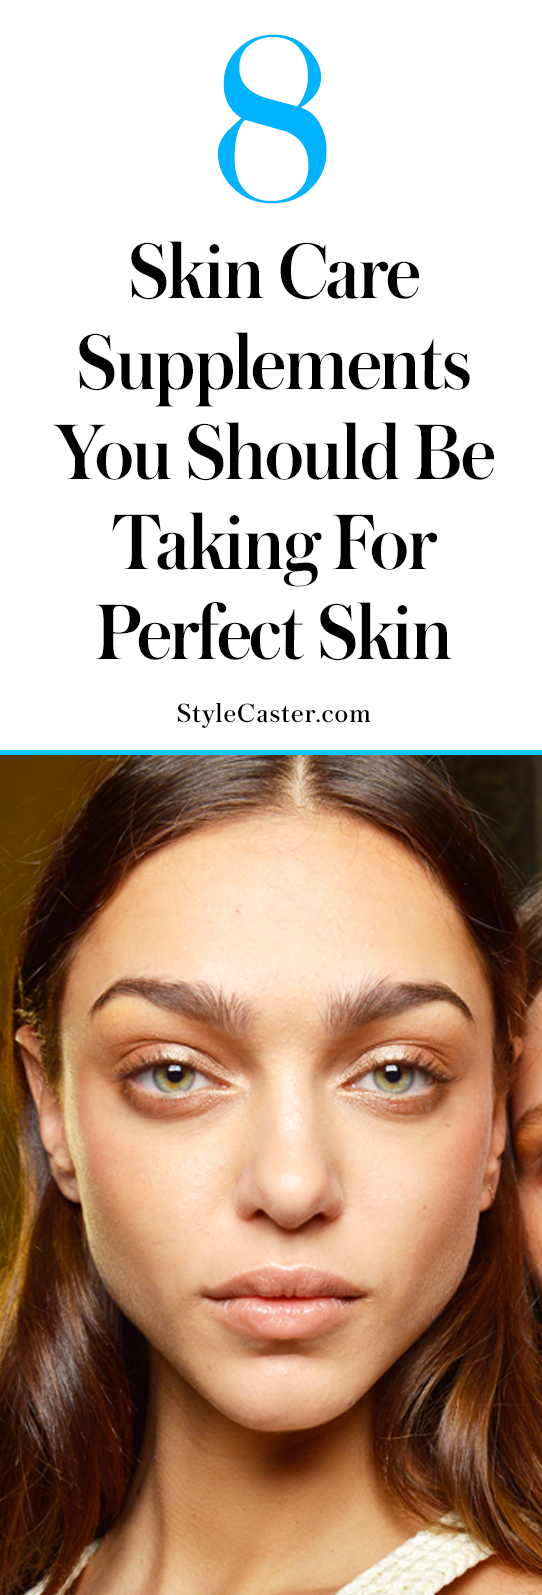 8 essential skin care supplements for perfect skin | Health and anti-aging benefits of skin care vitamins | @StyleCaster